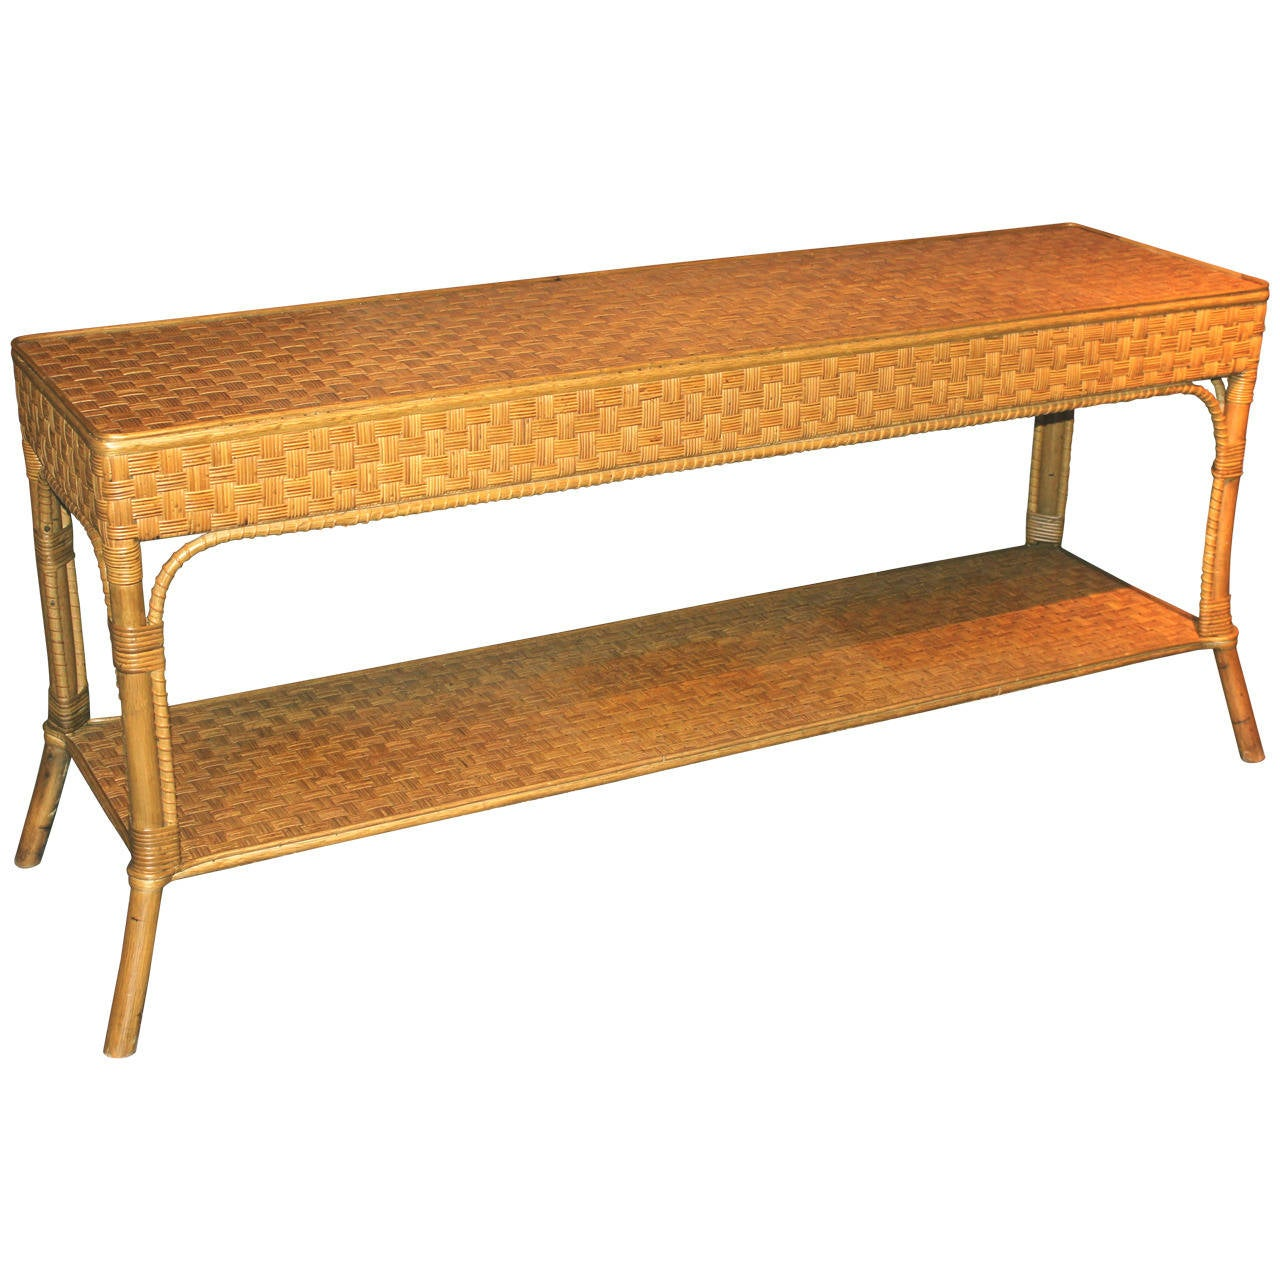 Wicker console or sofa table at stdibs